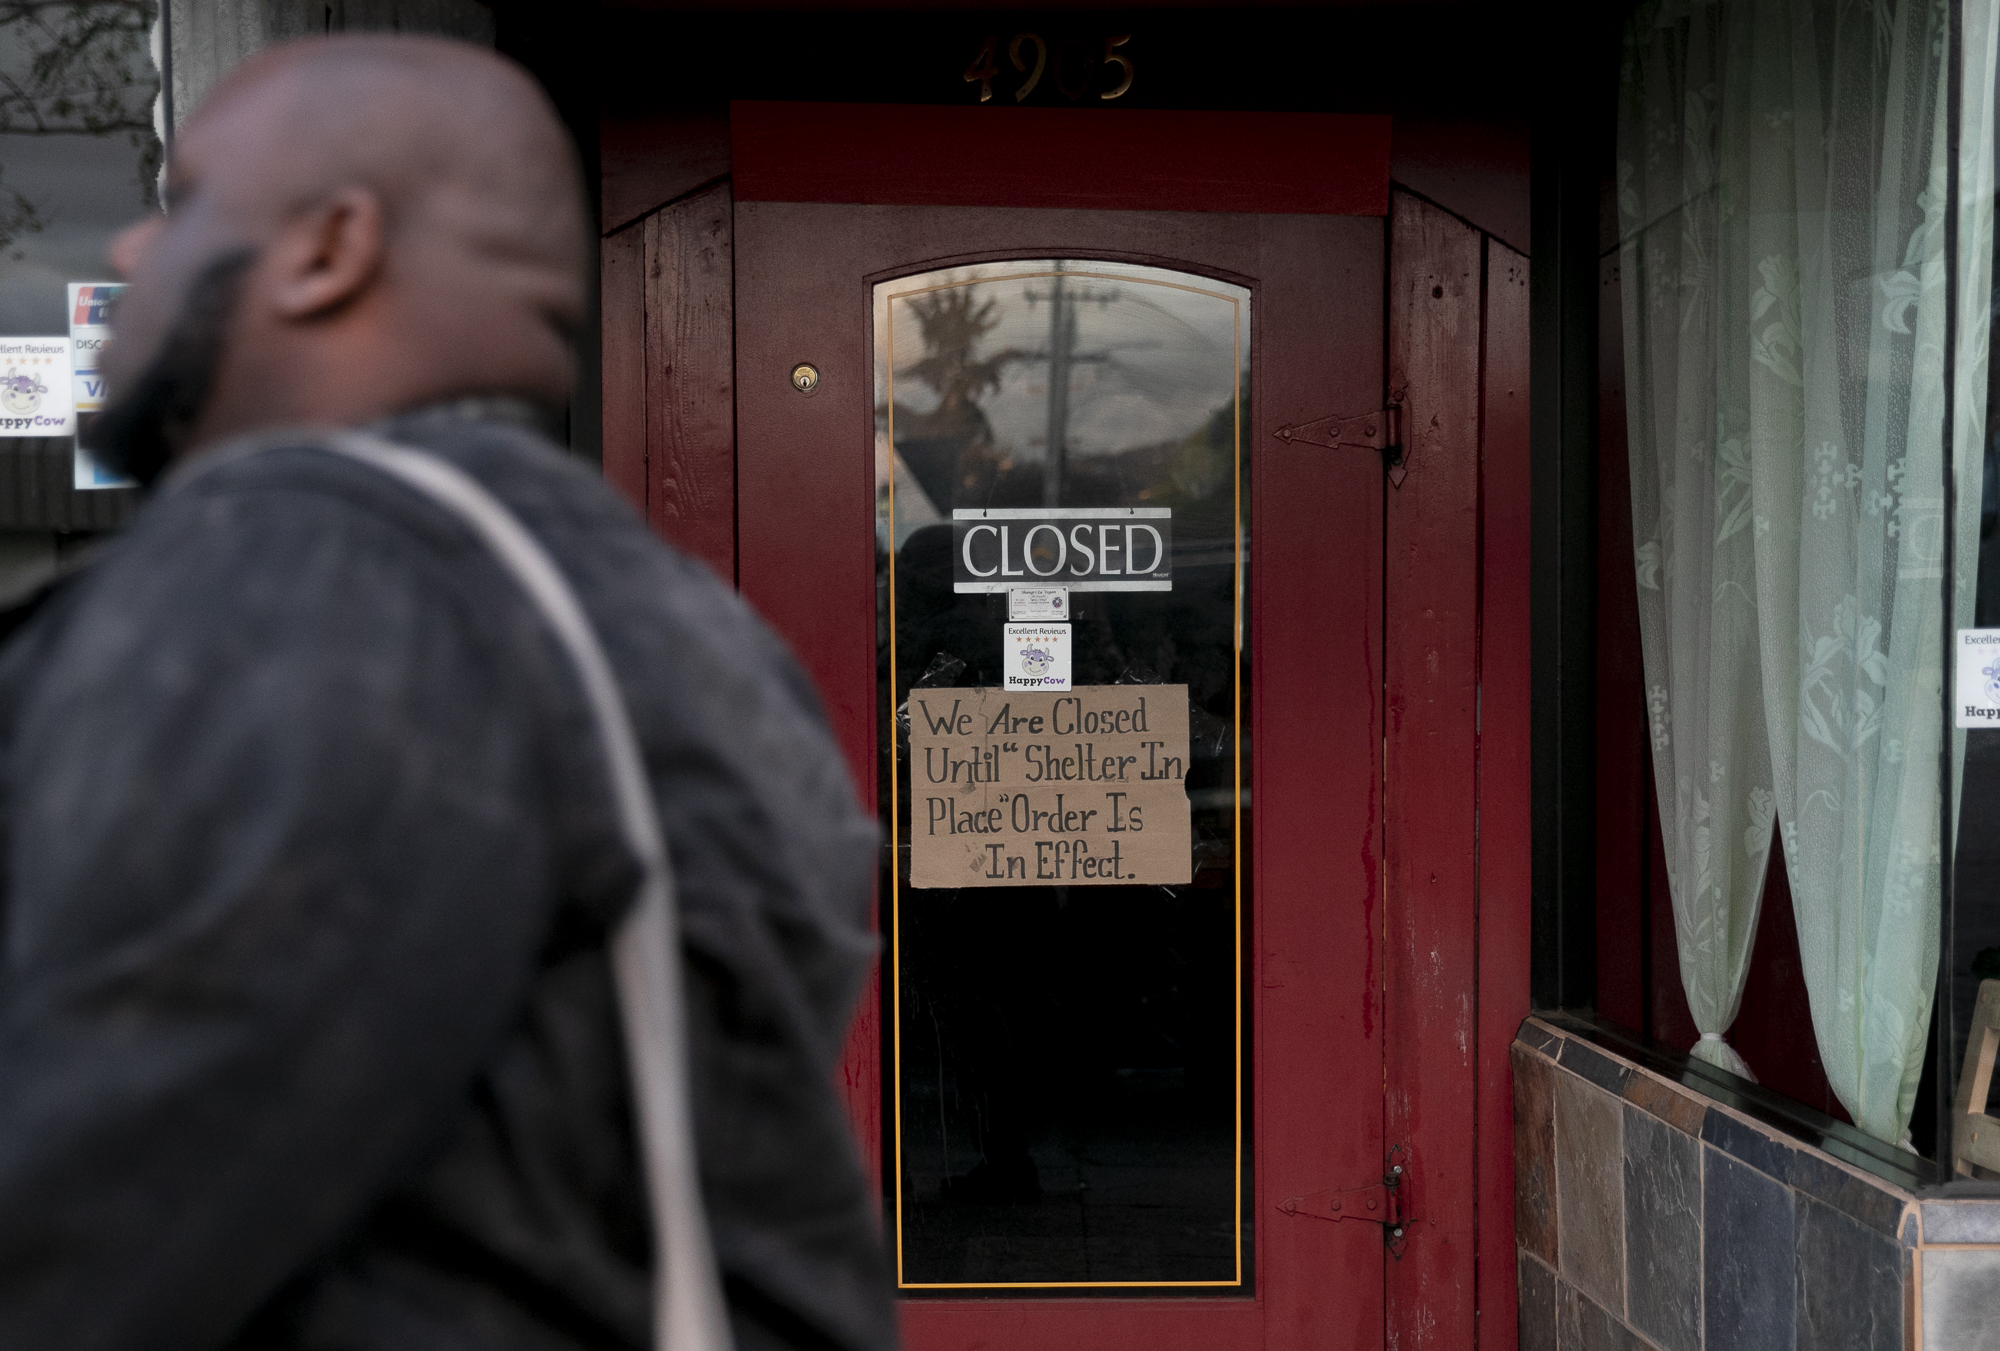 Restaurants and bars across the Bay Area closed on March 16, 2020 following a seven-county directive to shelter in place due to the coronavirus. Photo by Anne Wernikoff for CalMatters